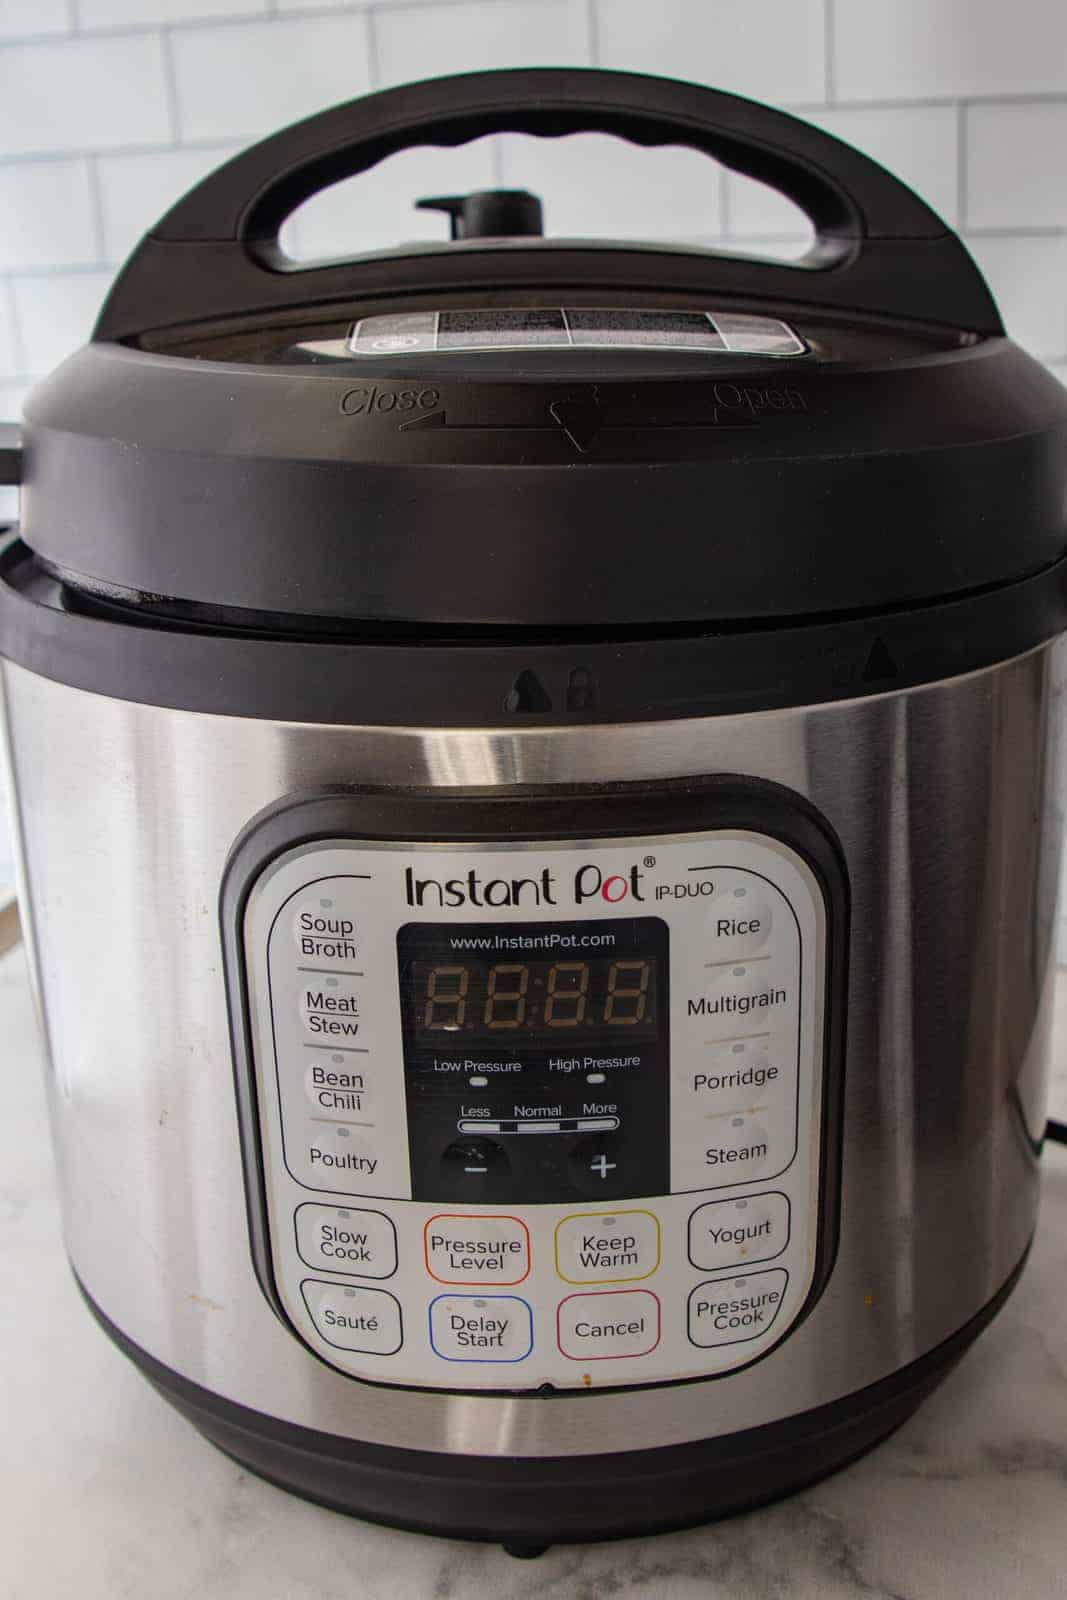 Instant pot showing the unit up close and all the settings it offers including, soup, meat, beans, chili, poultry slow cook, rice, multigrain, porridge, yogurt, and steam.